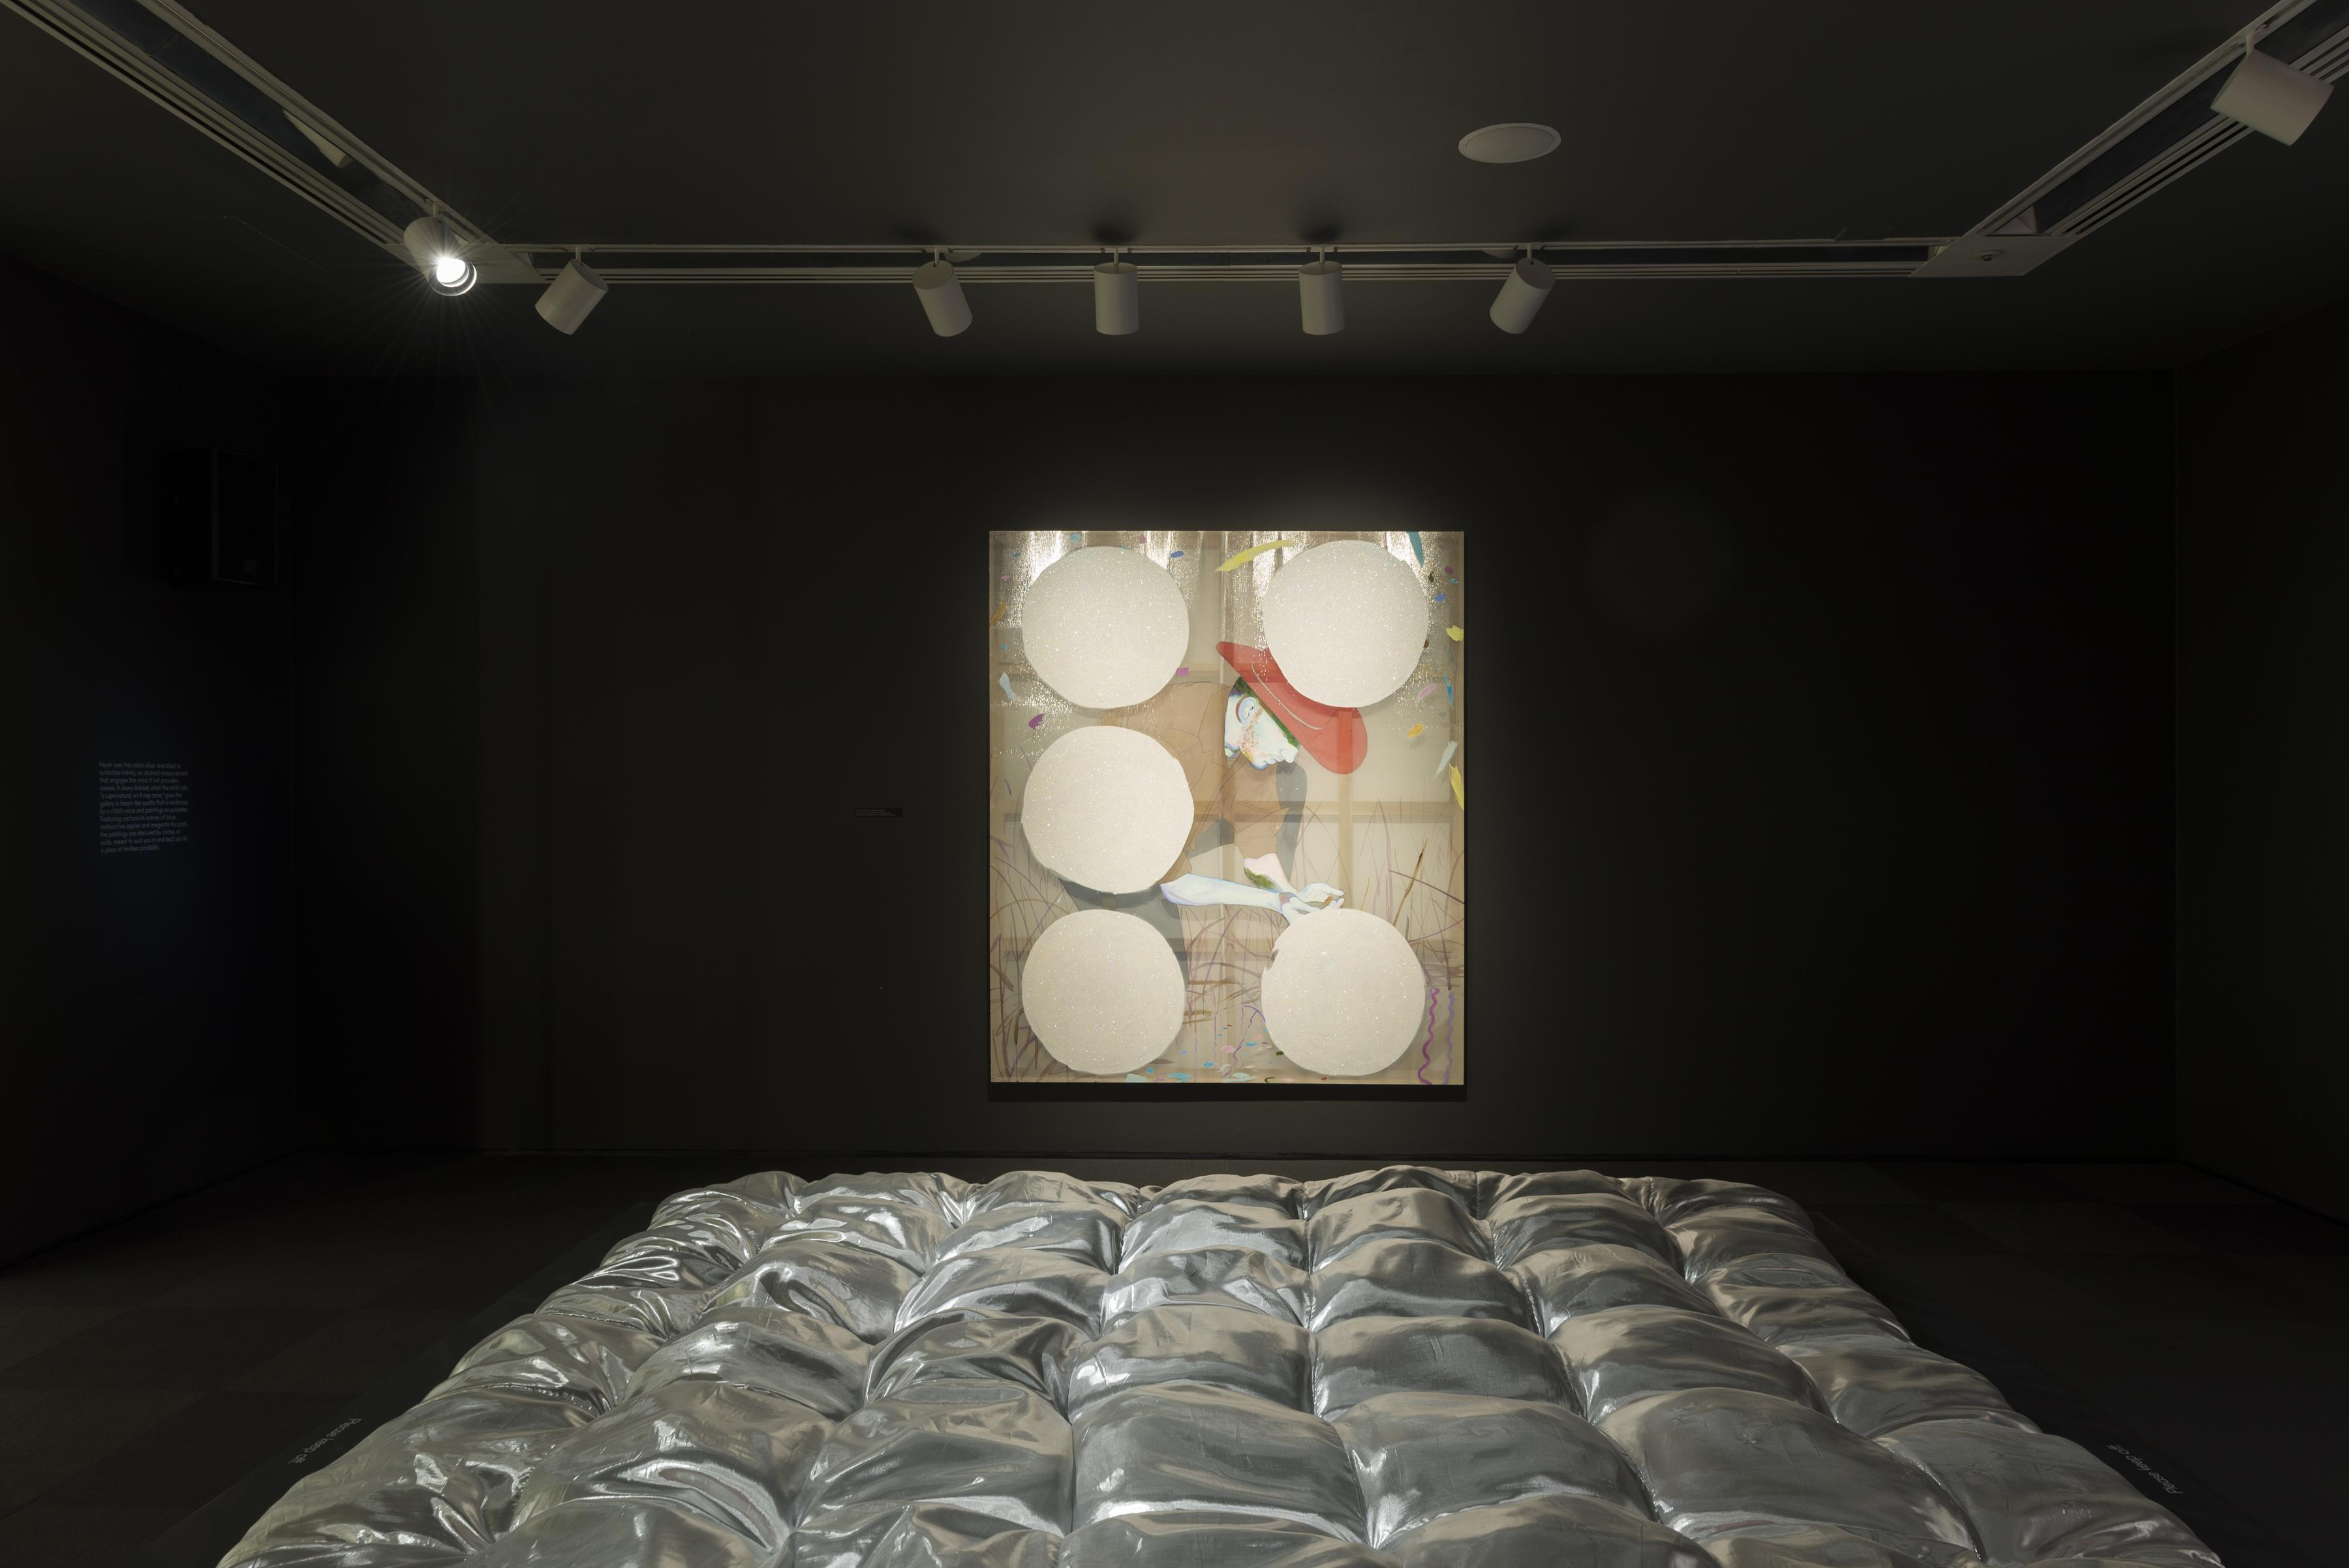 A darkened gallery features a metallic silver blanket in the foreground and a painting of a cowboy crouching in the background.